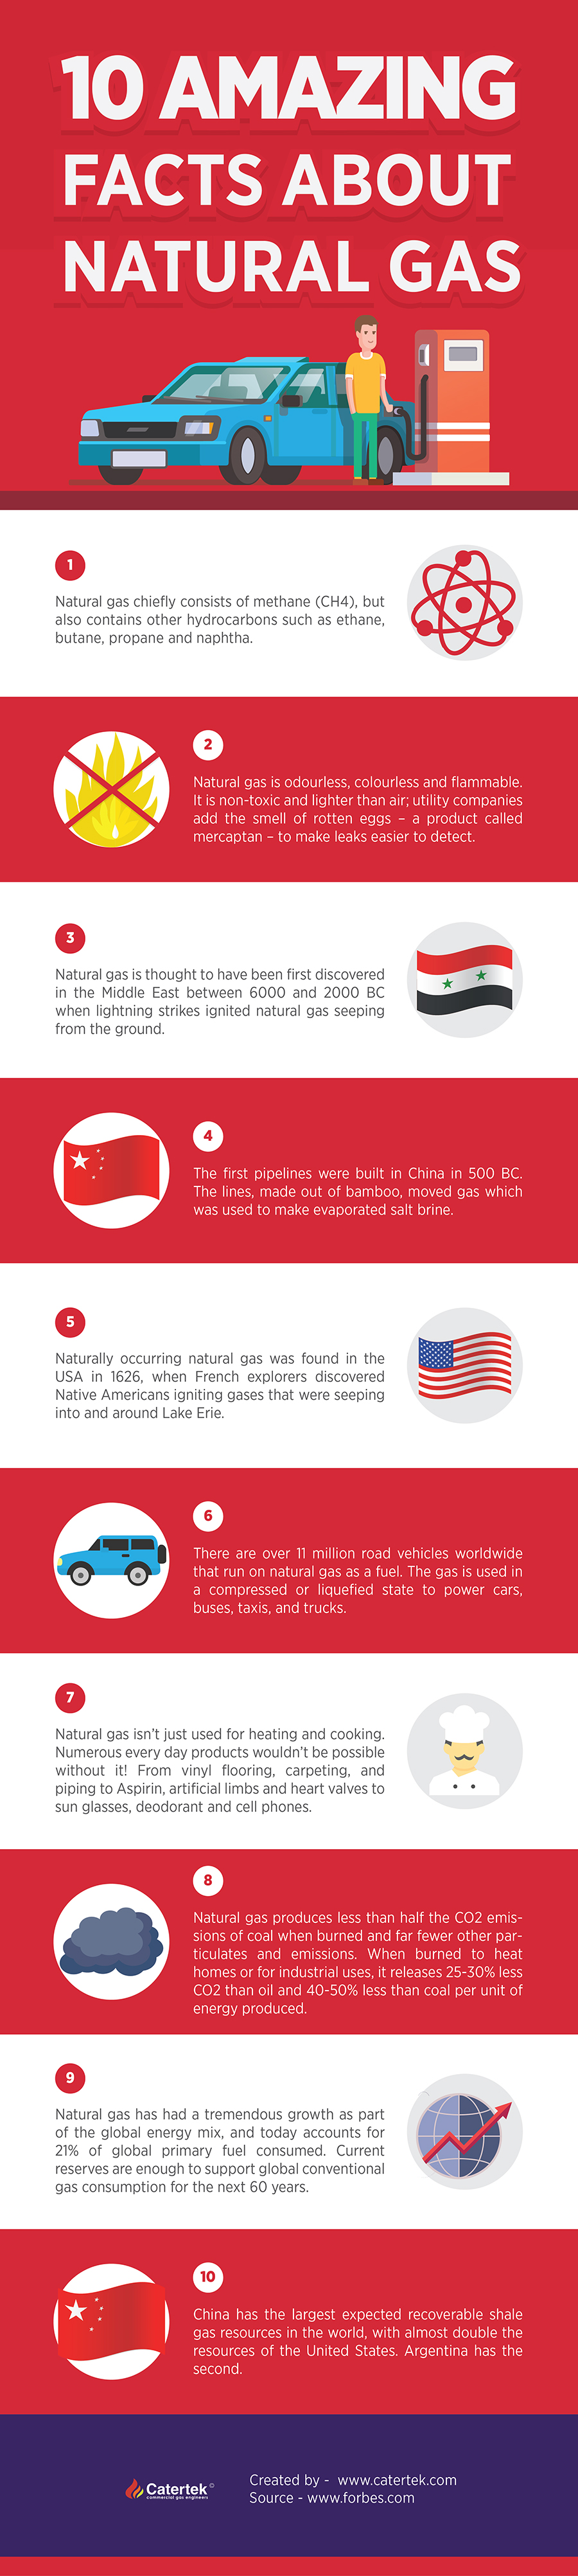 10 Amazing Facts About Natural Gas